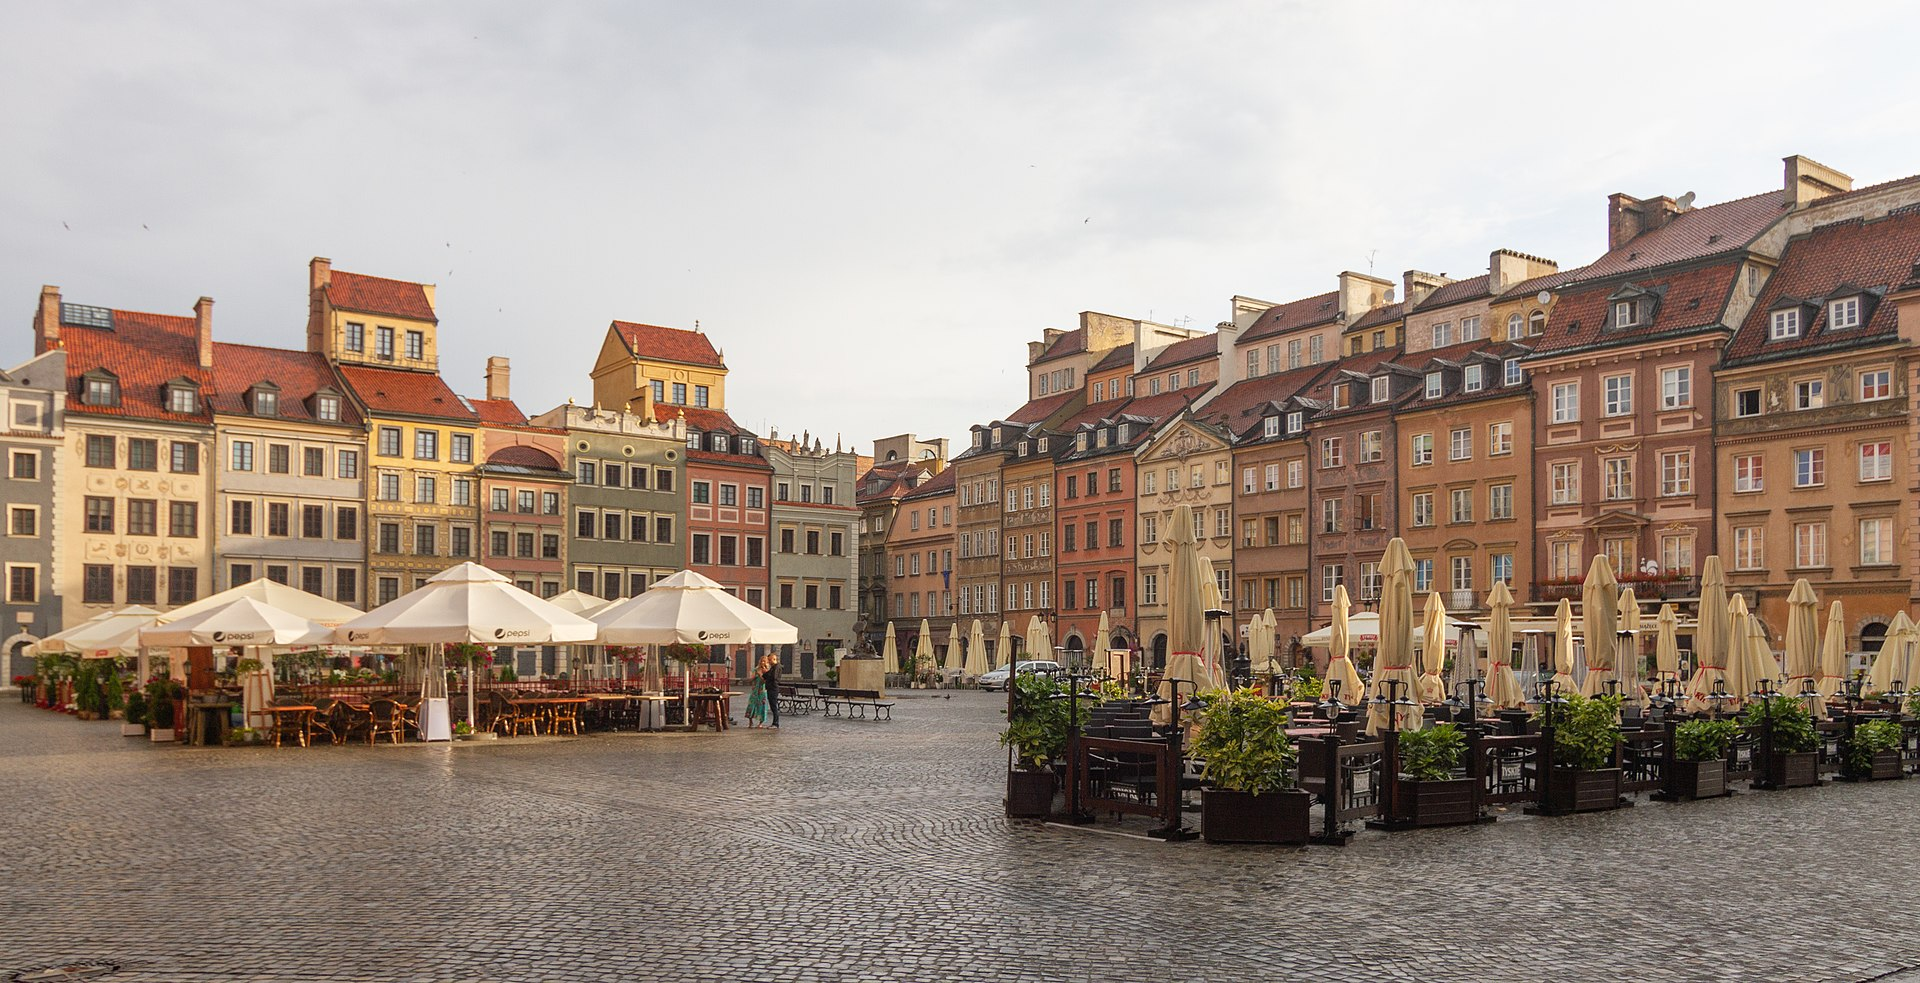 The Old Town of Warsaw, Poland, completely rebuilt after World War II.